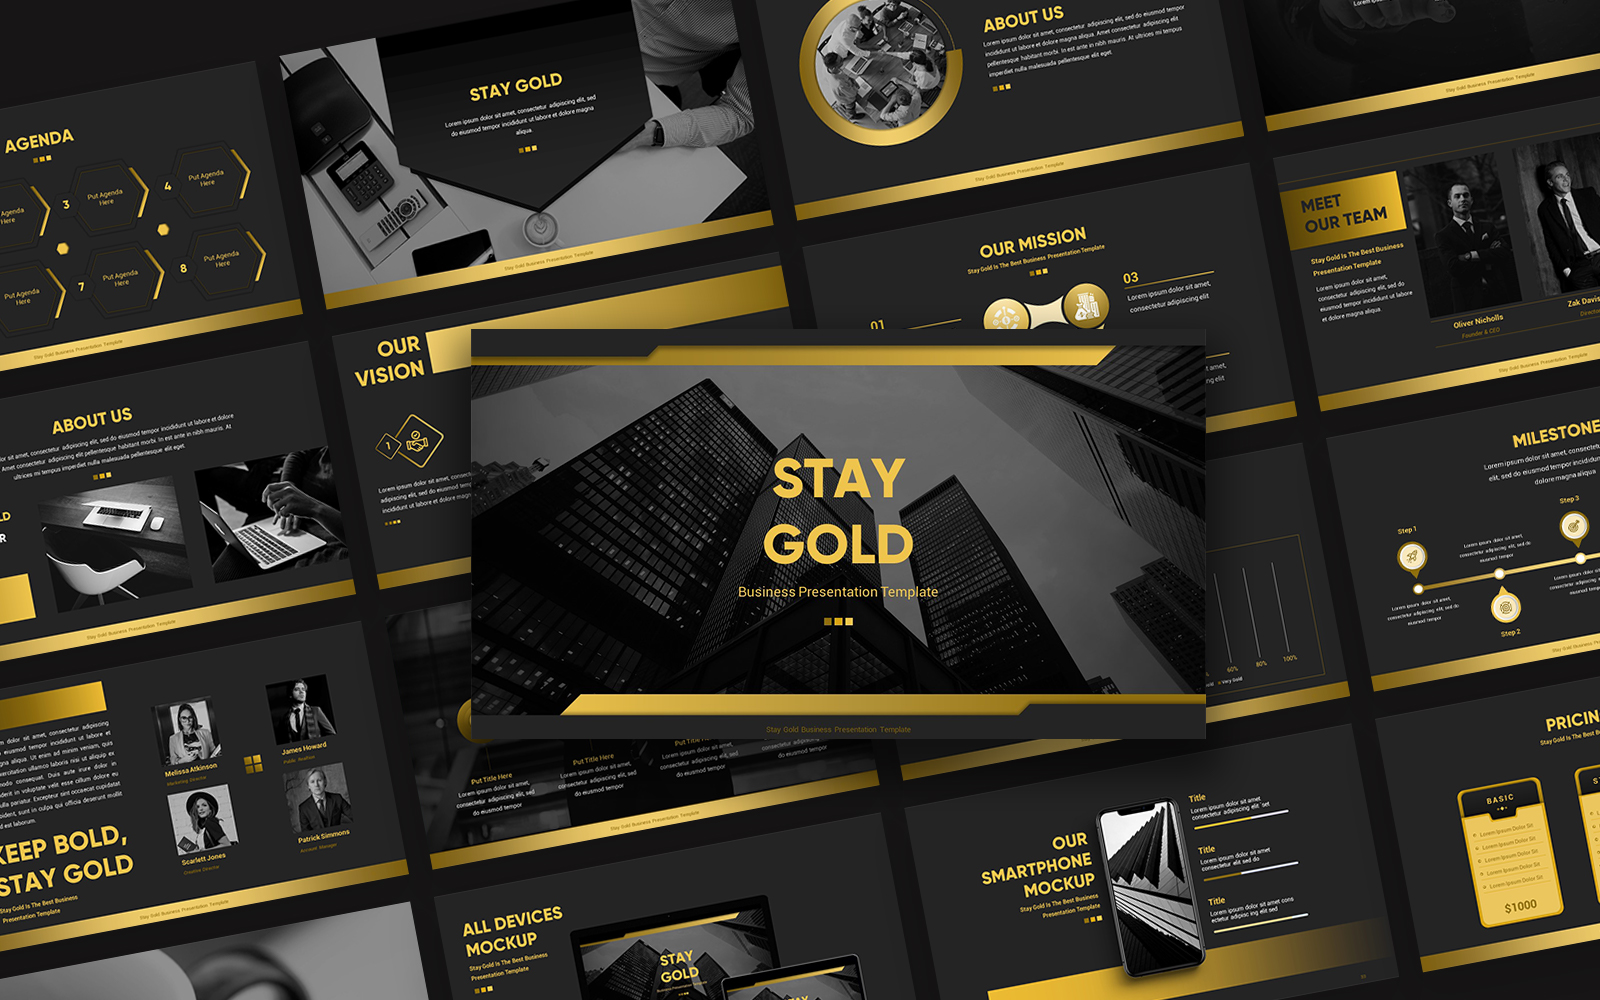 Stay Gold Business Presentation PowerPoint Template